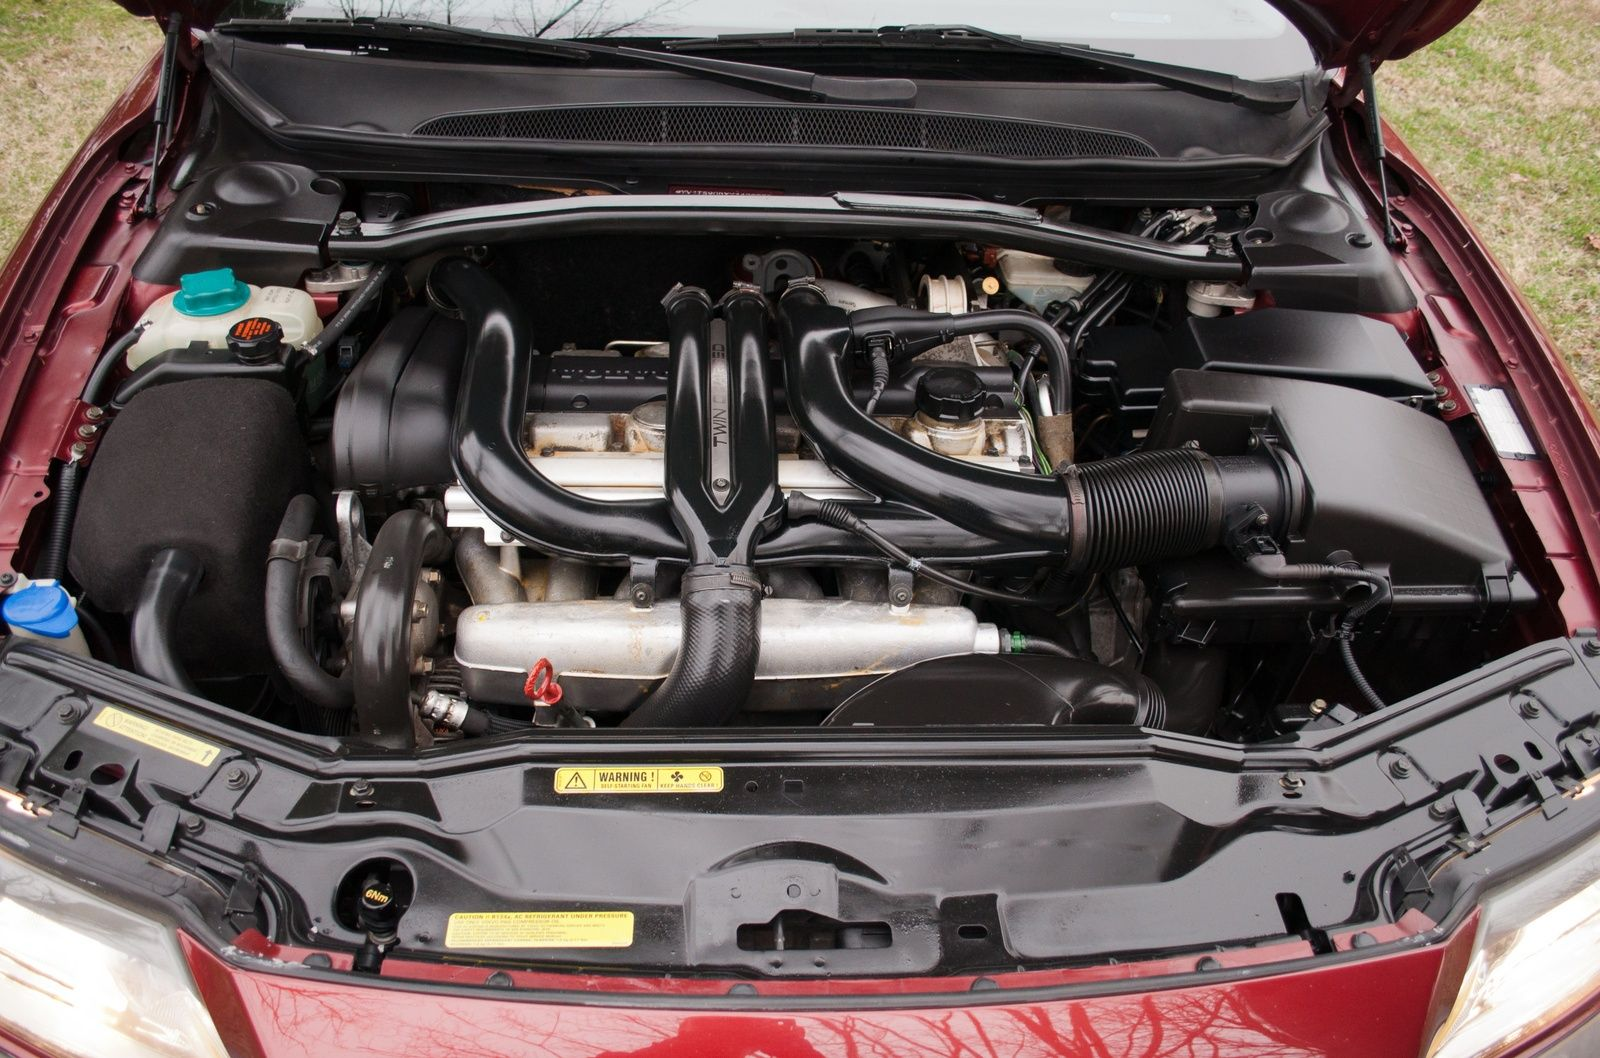 2011 volvo s80 gas engine gas 3 0l part name 2011 volvo s80 gas engine fits 3 0l vin 90 4th and 5th digit b6304t4 engine turbo size 3